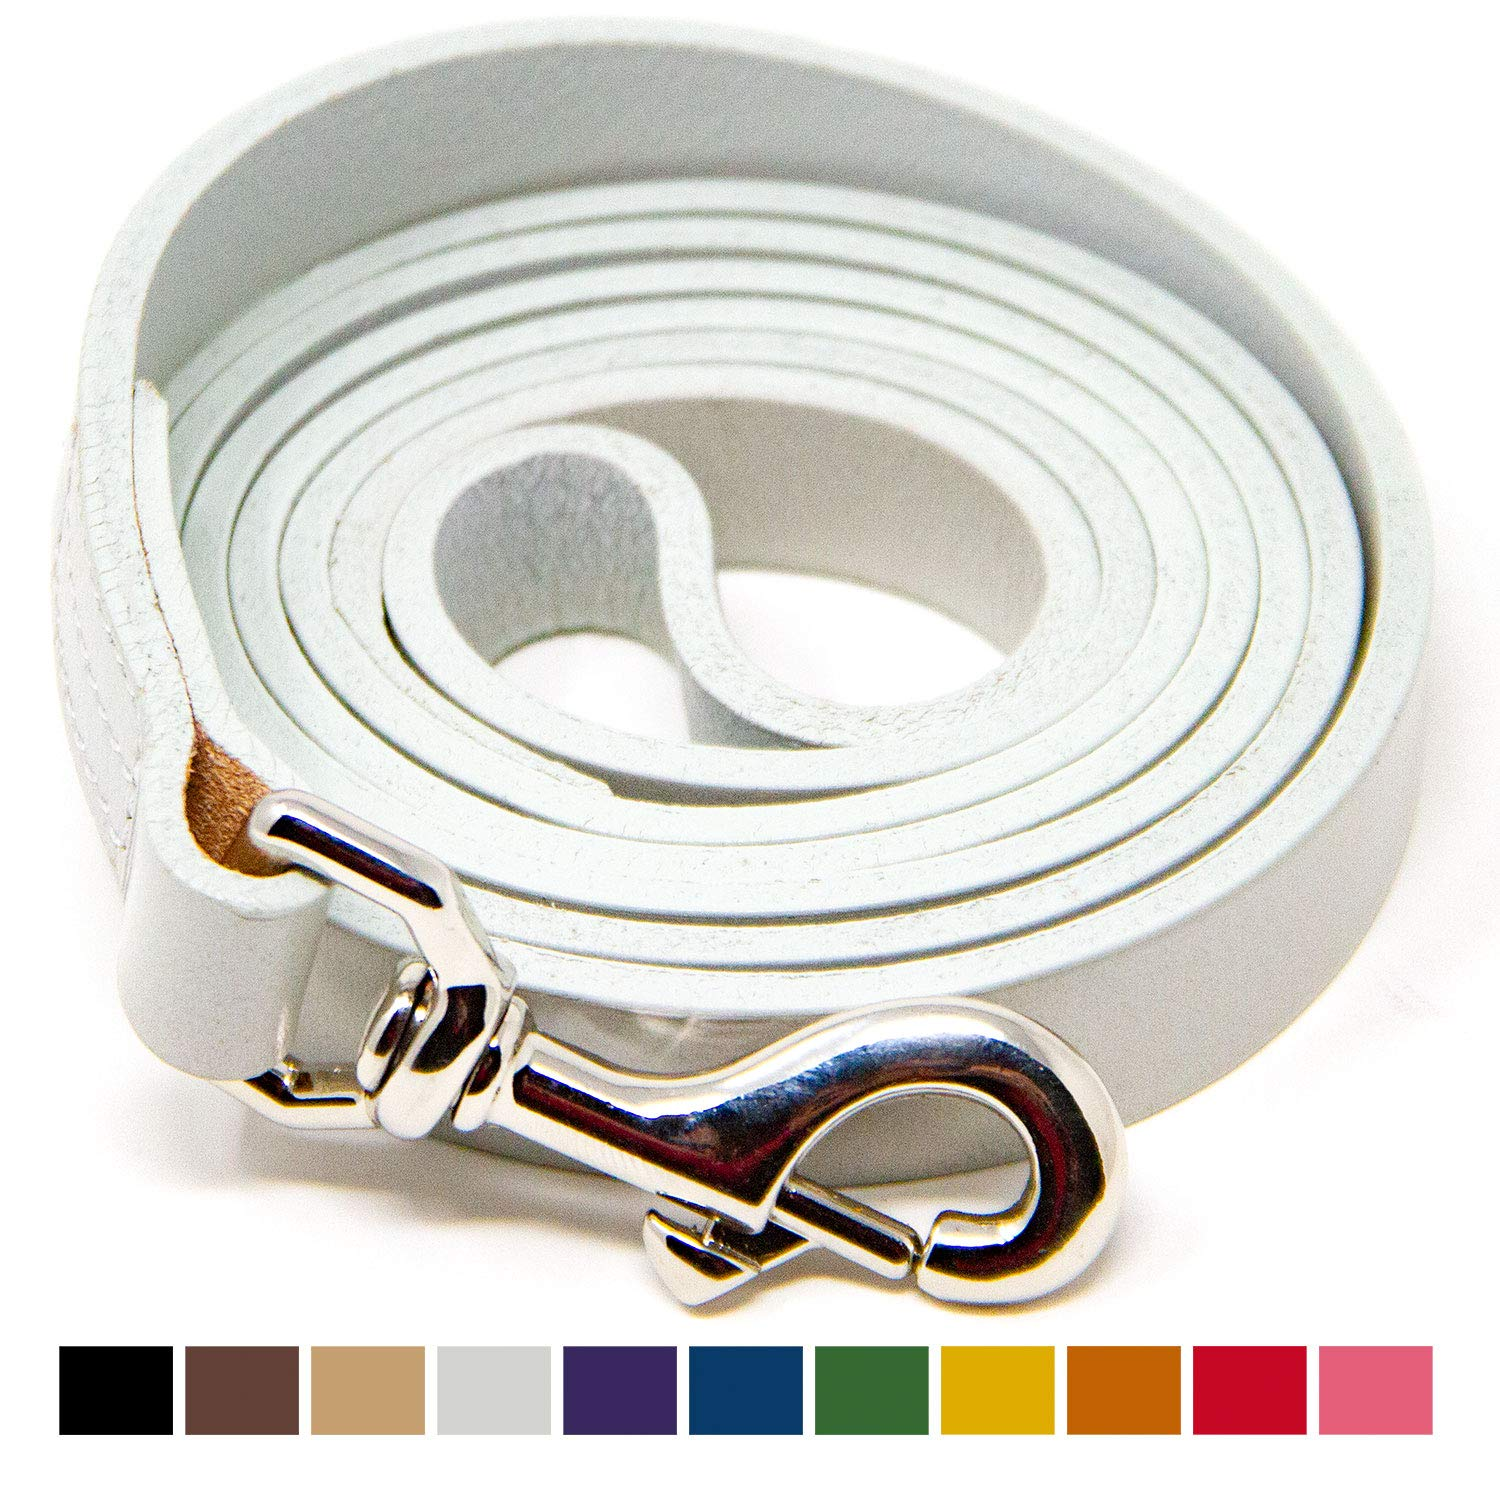 White 5 Foot White 5 Foot Logical Leather 5 Foot Dog Leash Best for Training Water Resistant Heavy Full Grain Leather Lead White